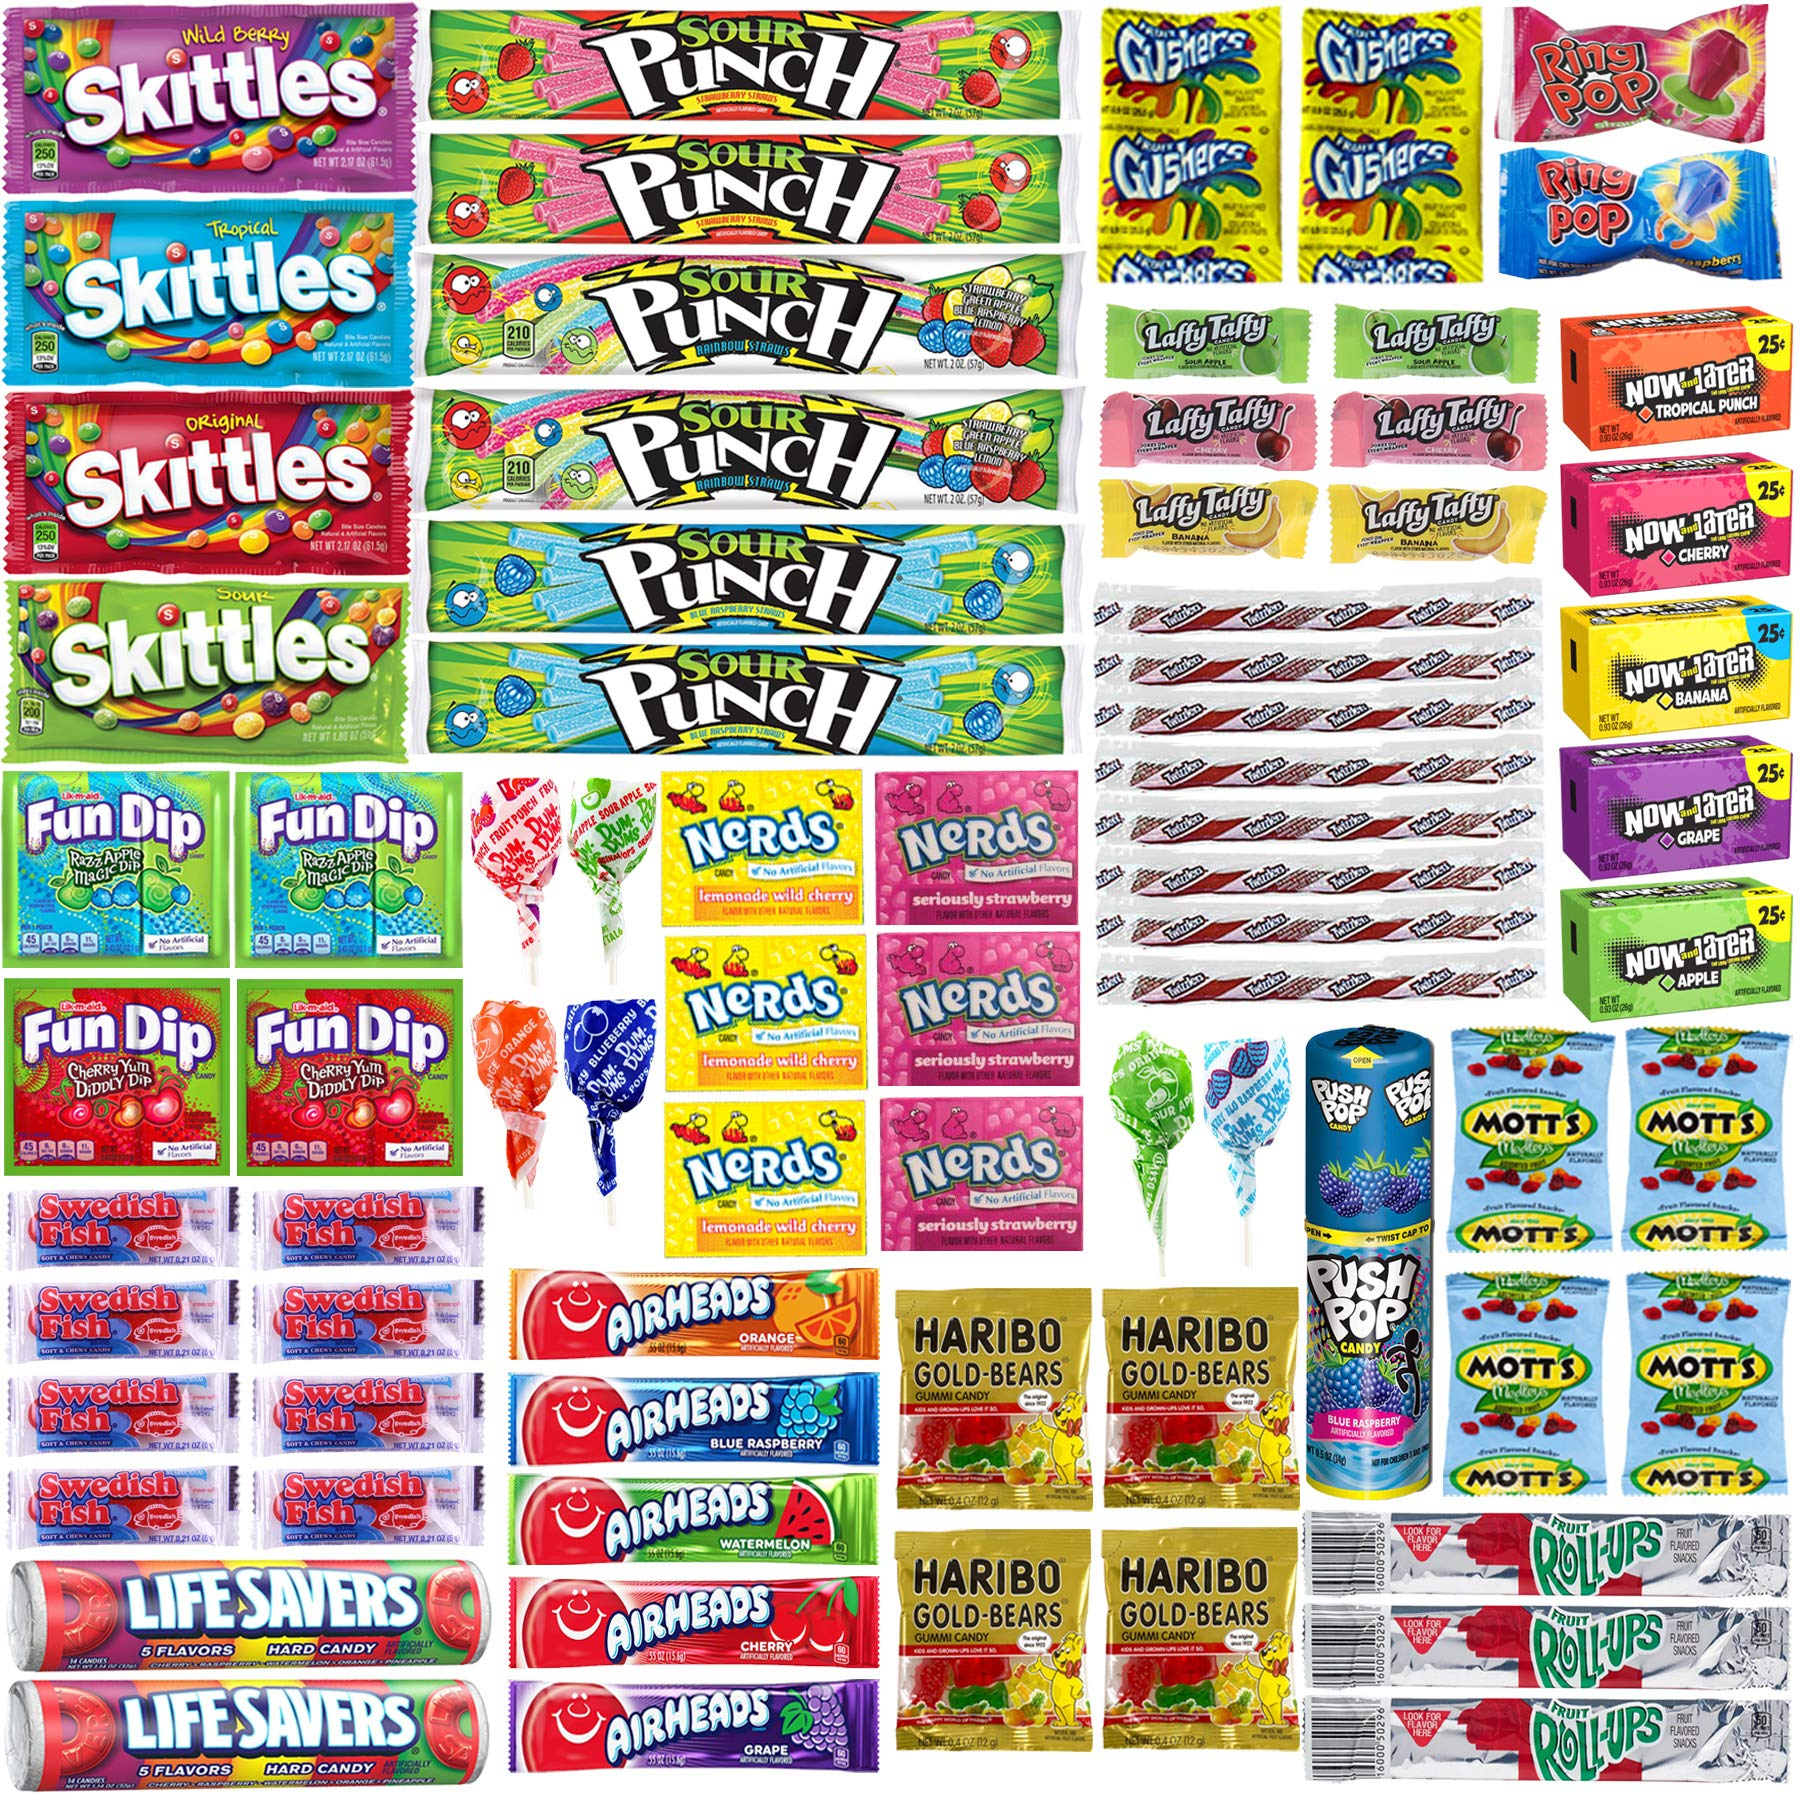 Assorted Candy Bulk Individually Wrapped Candies Assortment - Huge Party Mix of Airheads, Skittles, Sour Punch, Swedish Fish, Nerds, Twizzlers and More (76 Count Variety Pack, Appx. 3.5 Lbs) by Blunon